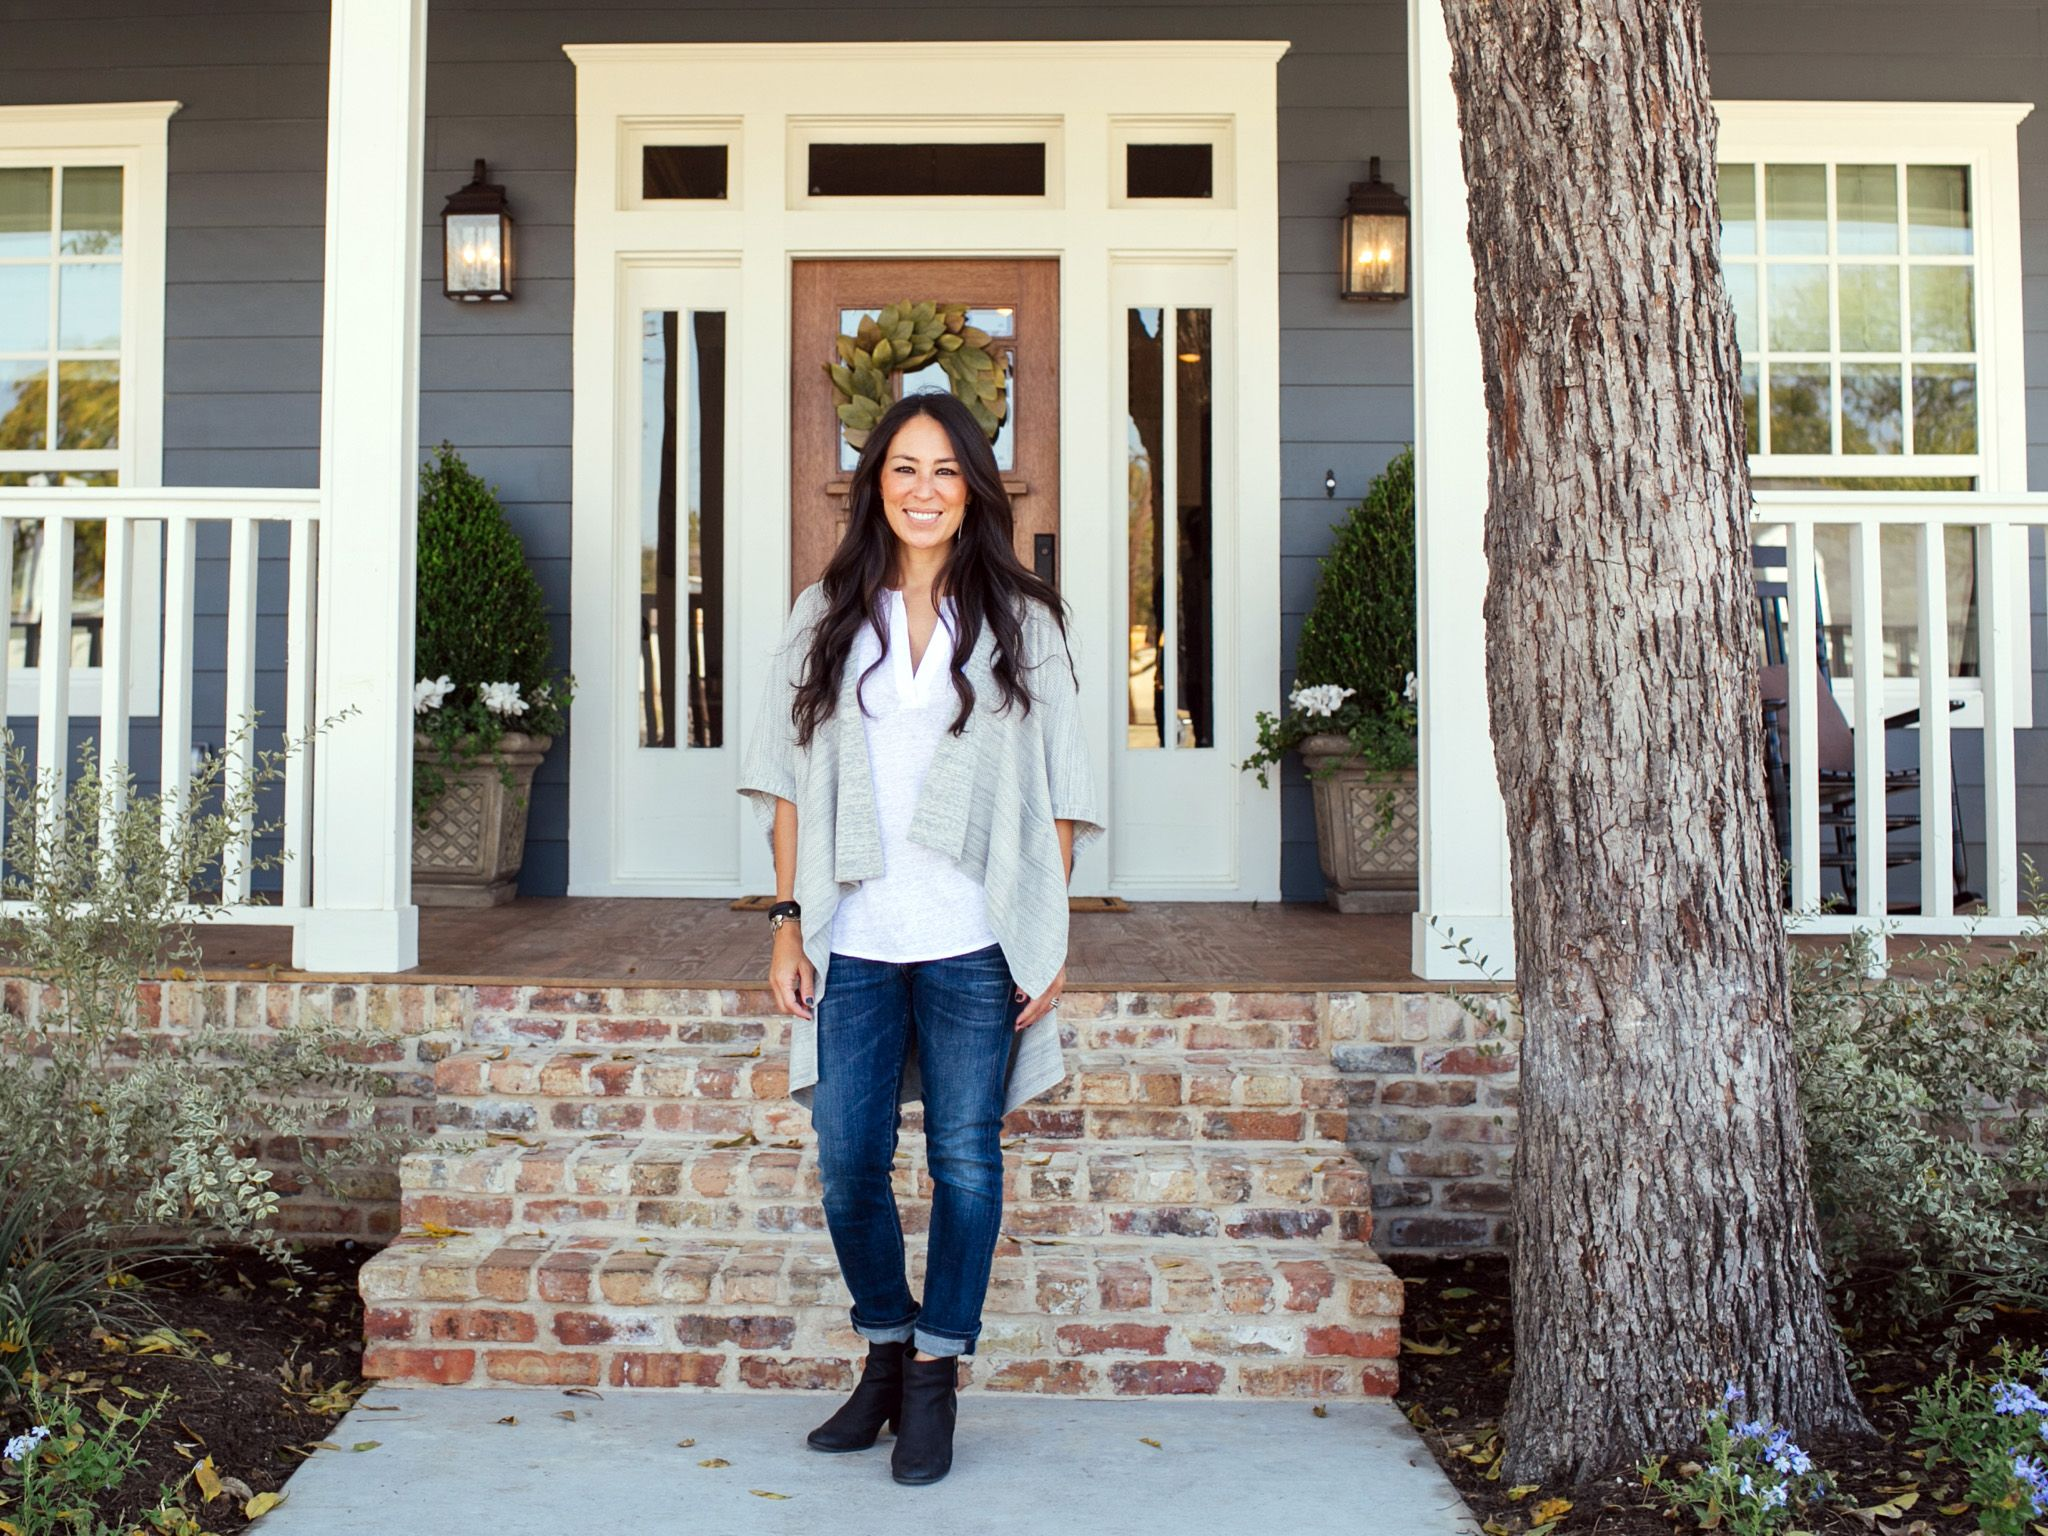 Round table joanna gaines google search design ideas for Where is joanna gaines originally from